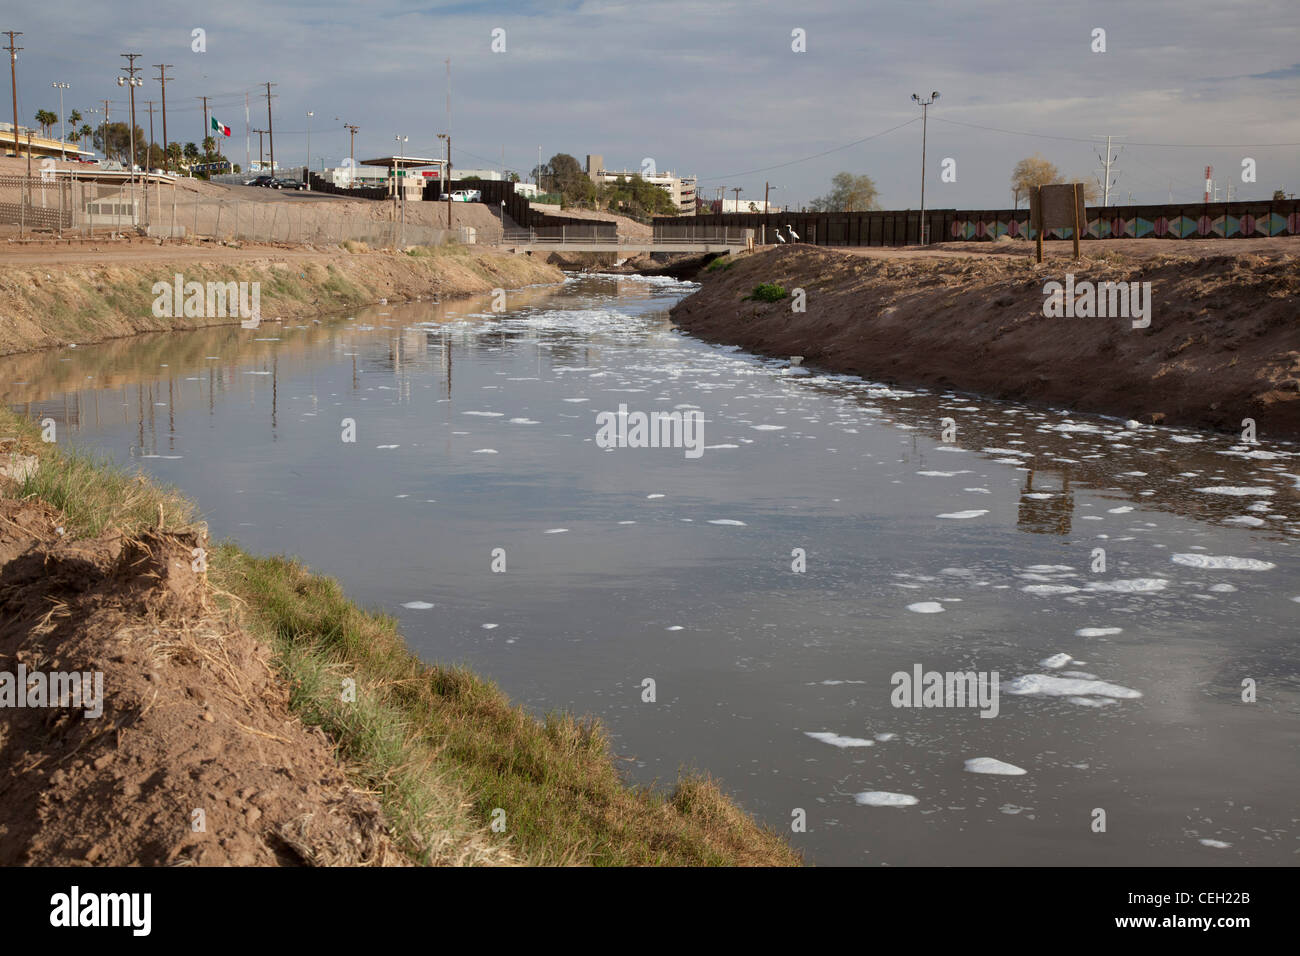 The heavily-polluted New River, as it enters the USA from Mexico - Stock Image